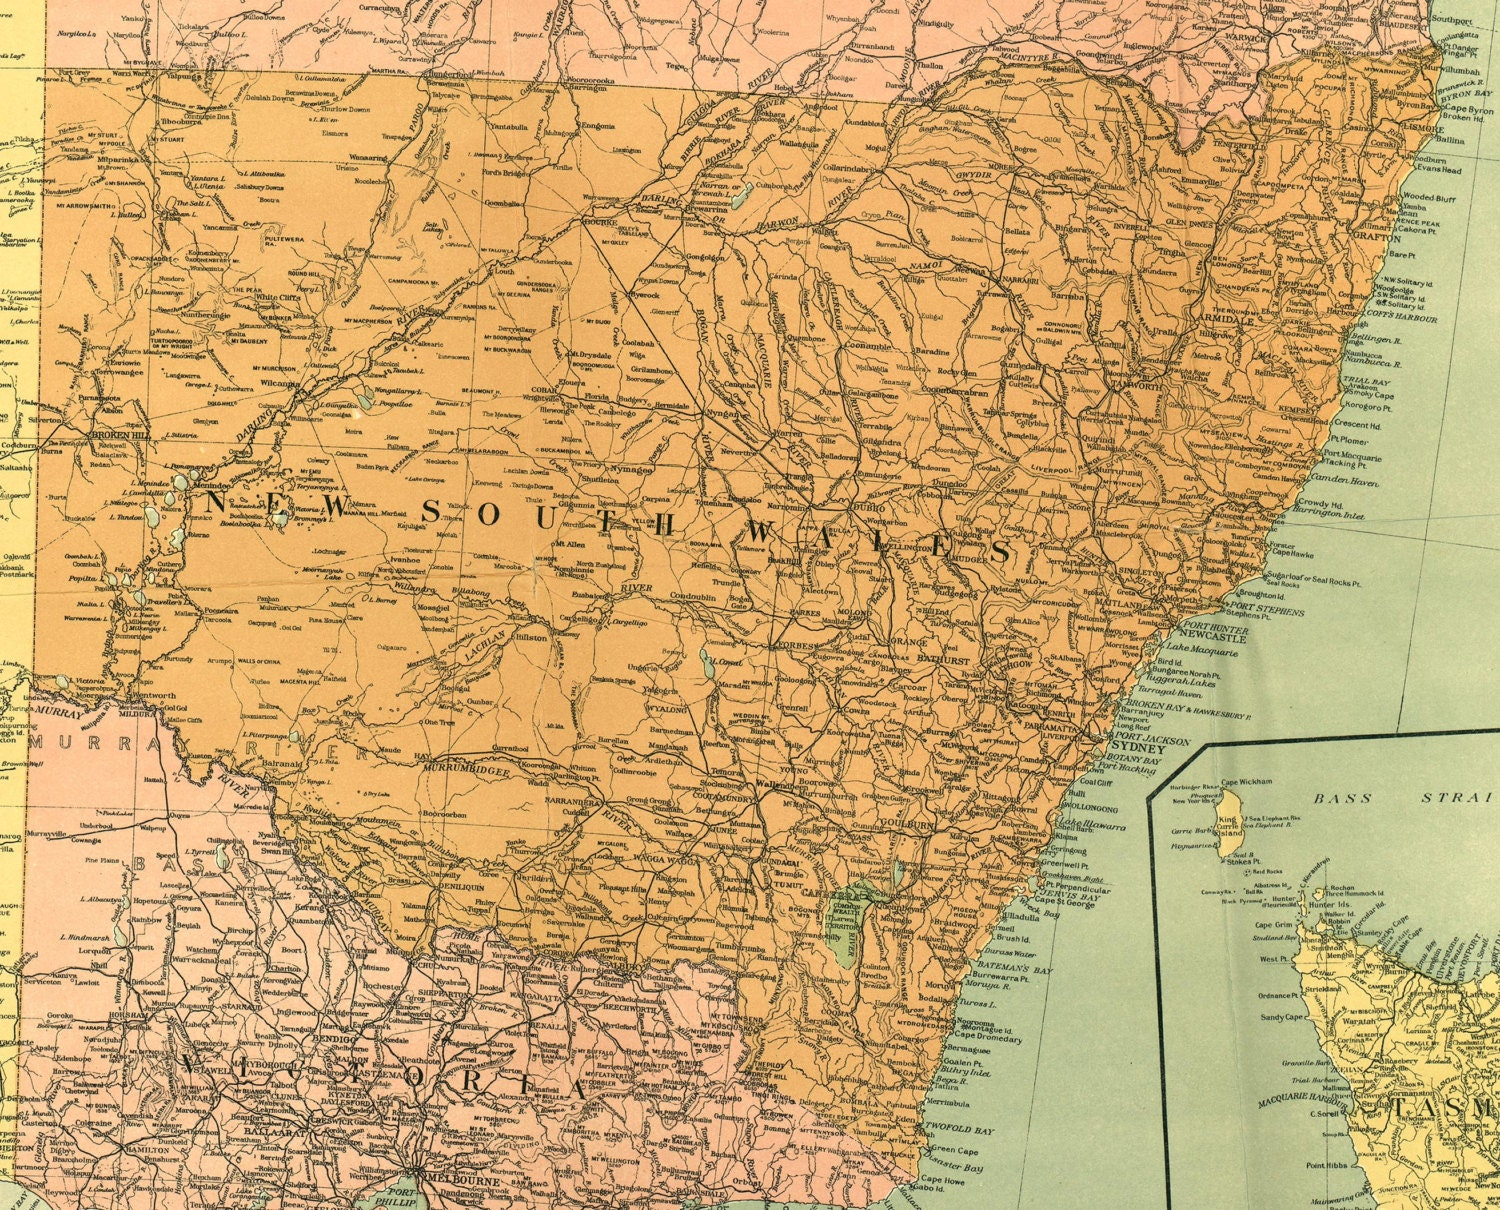 Australia 1916 new south wales wall world map ancient world request a custom order and have something made just for you gumiabroncs Choice Image